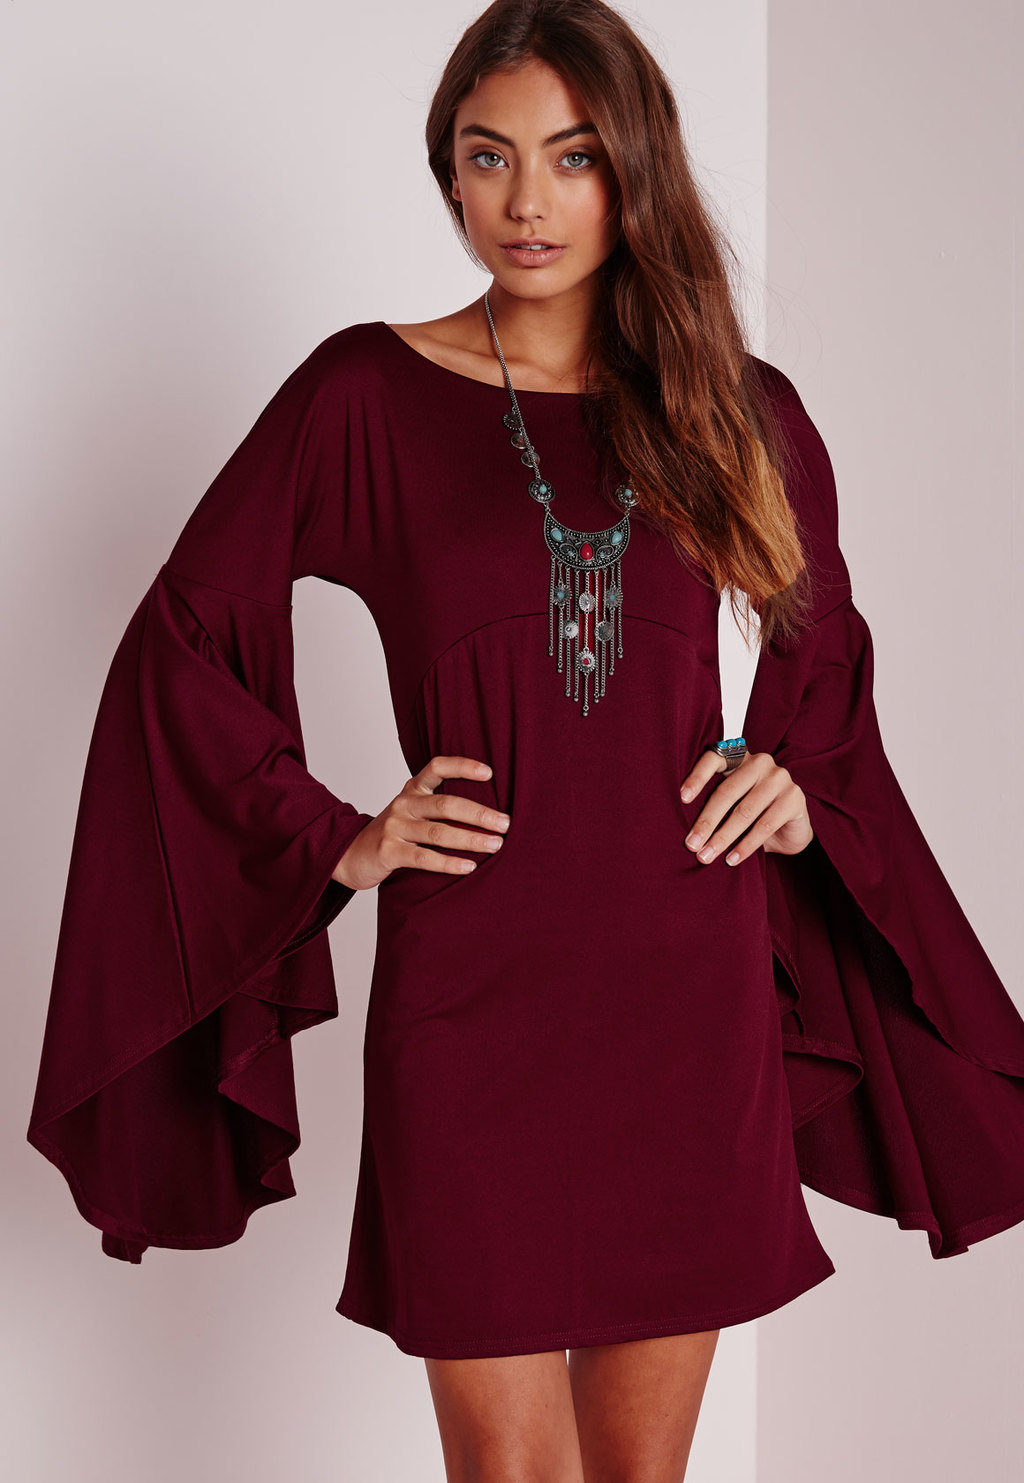 Flared Sleeve Swing Dress Burgundy, Red - style: shift; length: mid thigh; neckline: round neck; sleeve style: angel/waterfall; pattern: plain; predominant colour: burgundy; occasions: evening; fit: body skimming; fibres: polyester/polyamide - stretch; sleeve length: long sleeve; pattern type: fabric; texture group: jersey - stretchy/drapey; season: a/w 2015; wardrobe: event